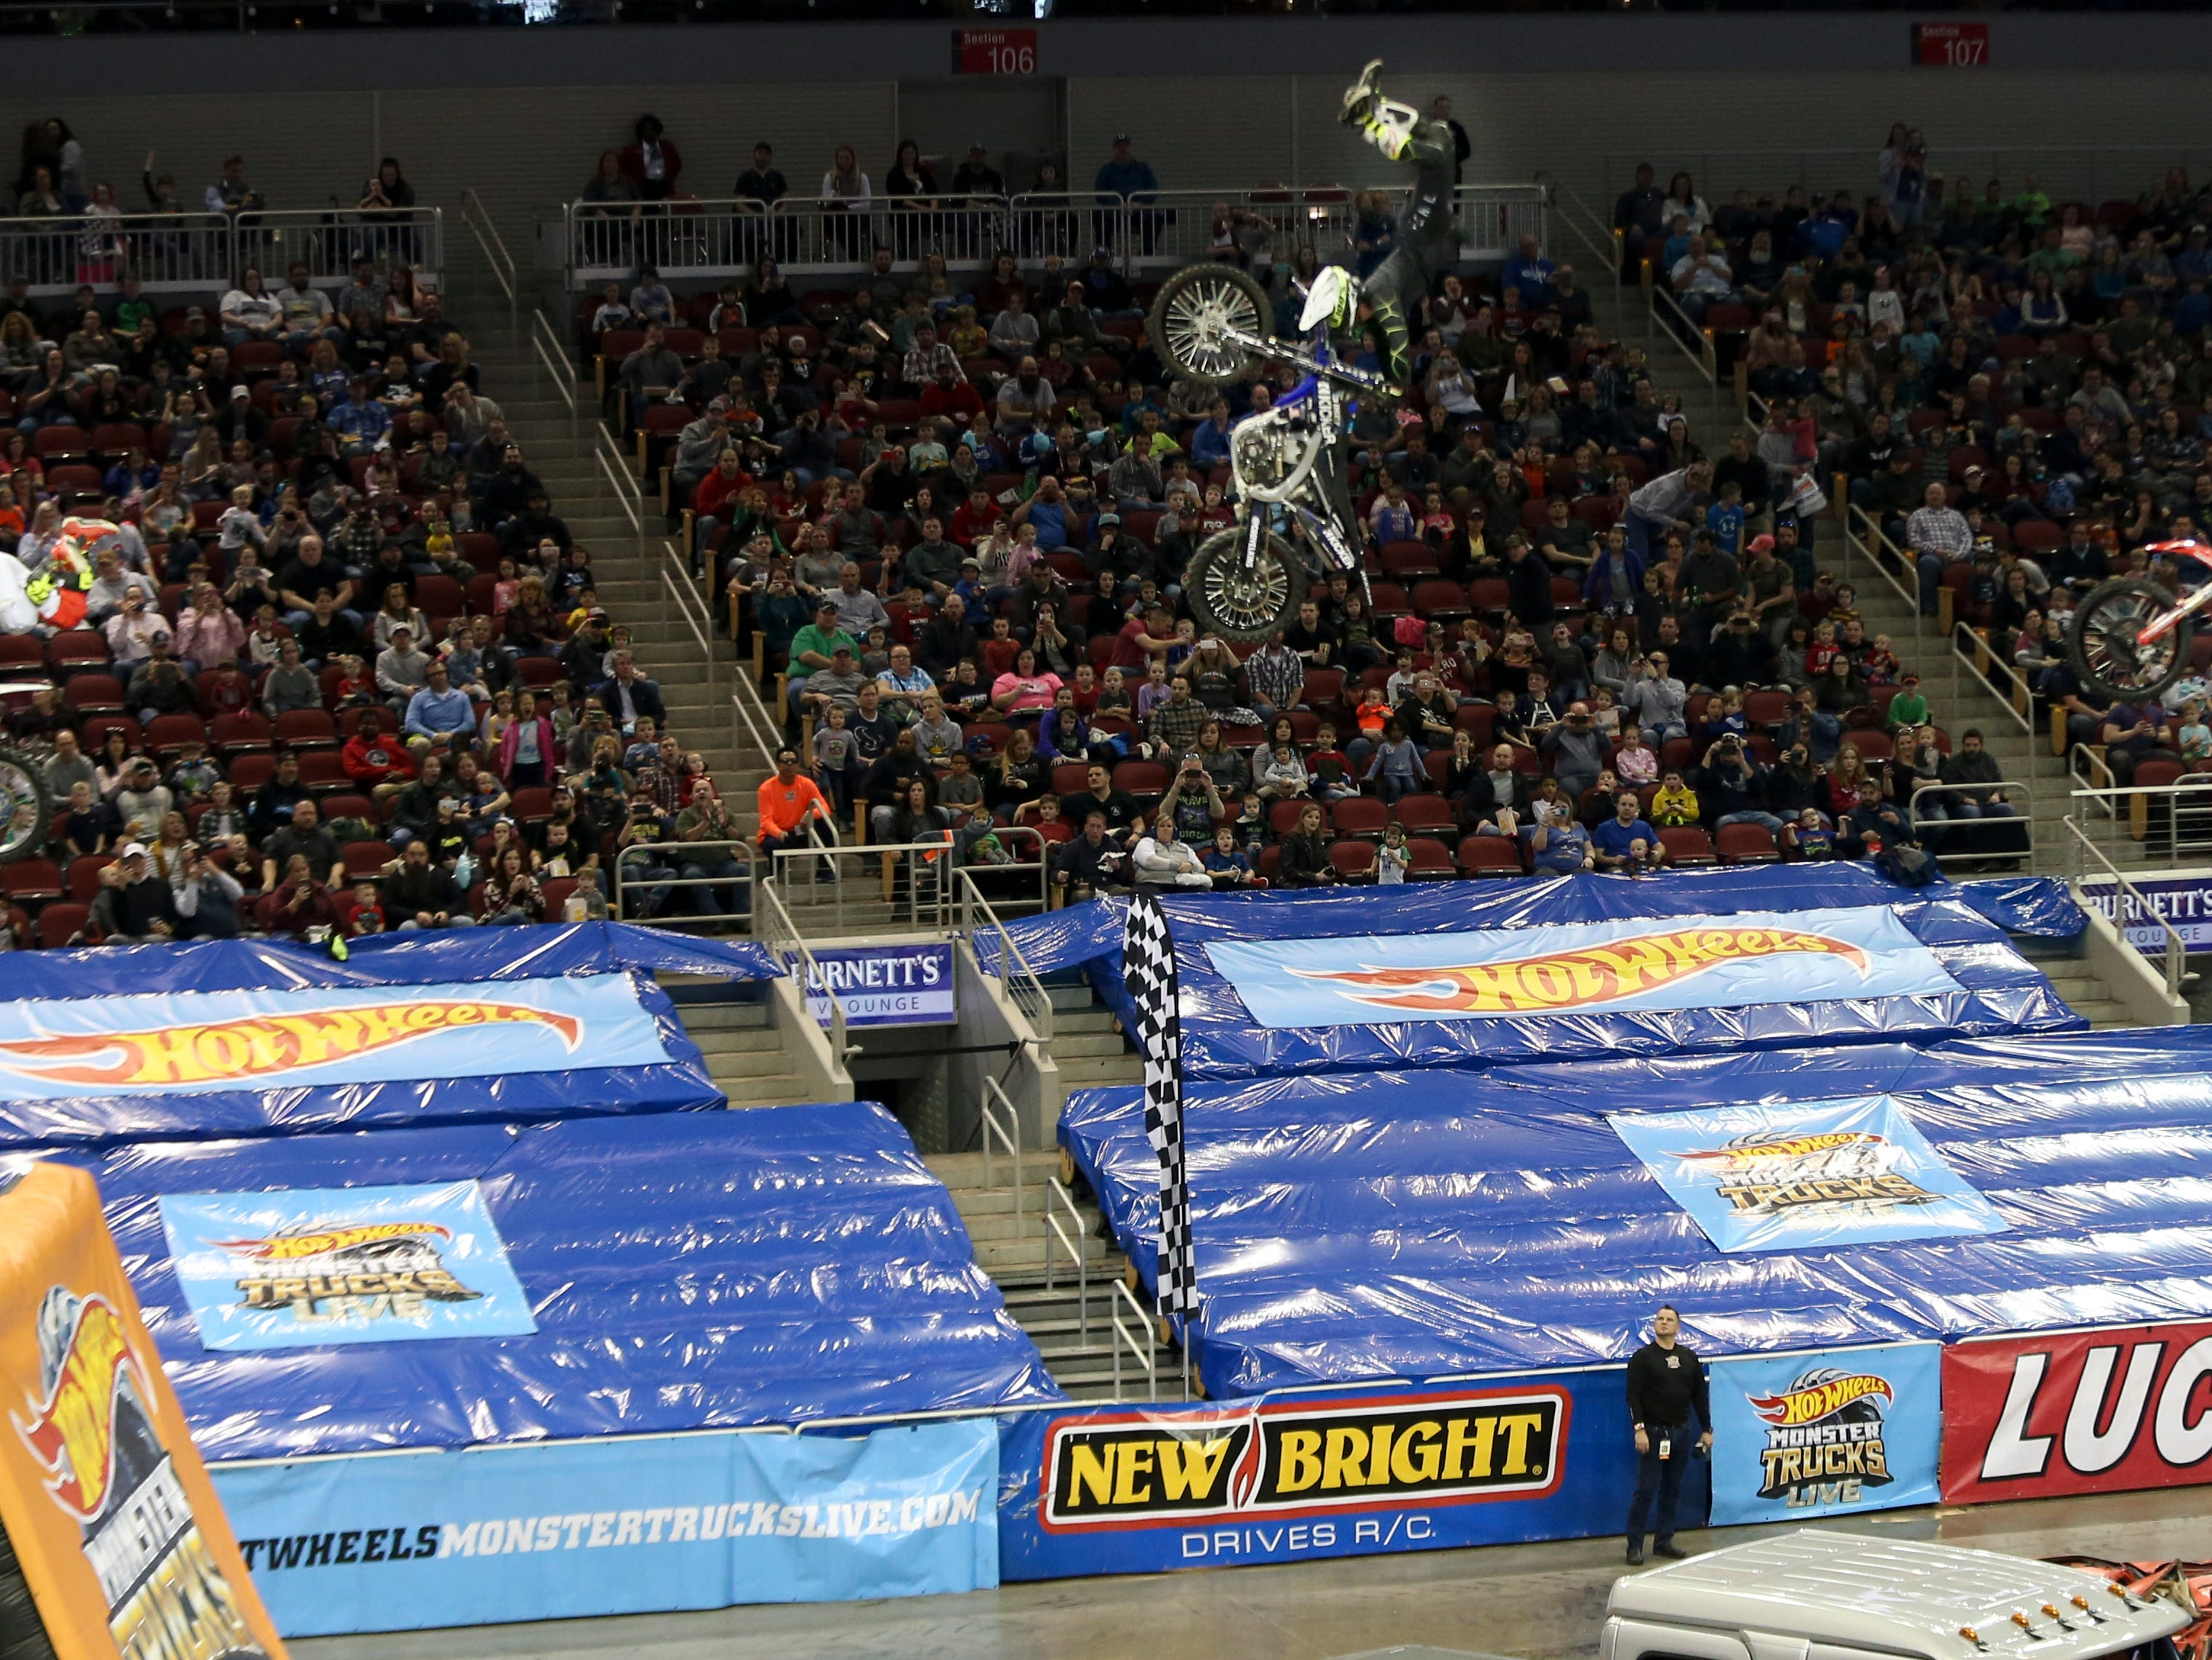 FMX riders, Brody Wilson, Cody Elkins and Josh Headford, entertain the crowd at the Hot Wheels Monster Trucks show at the KFC Yum Center on March 16.